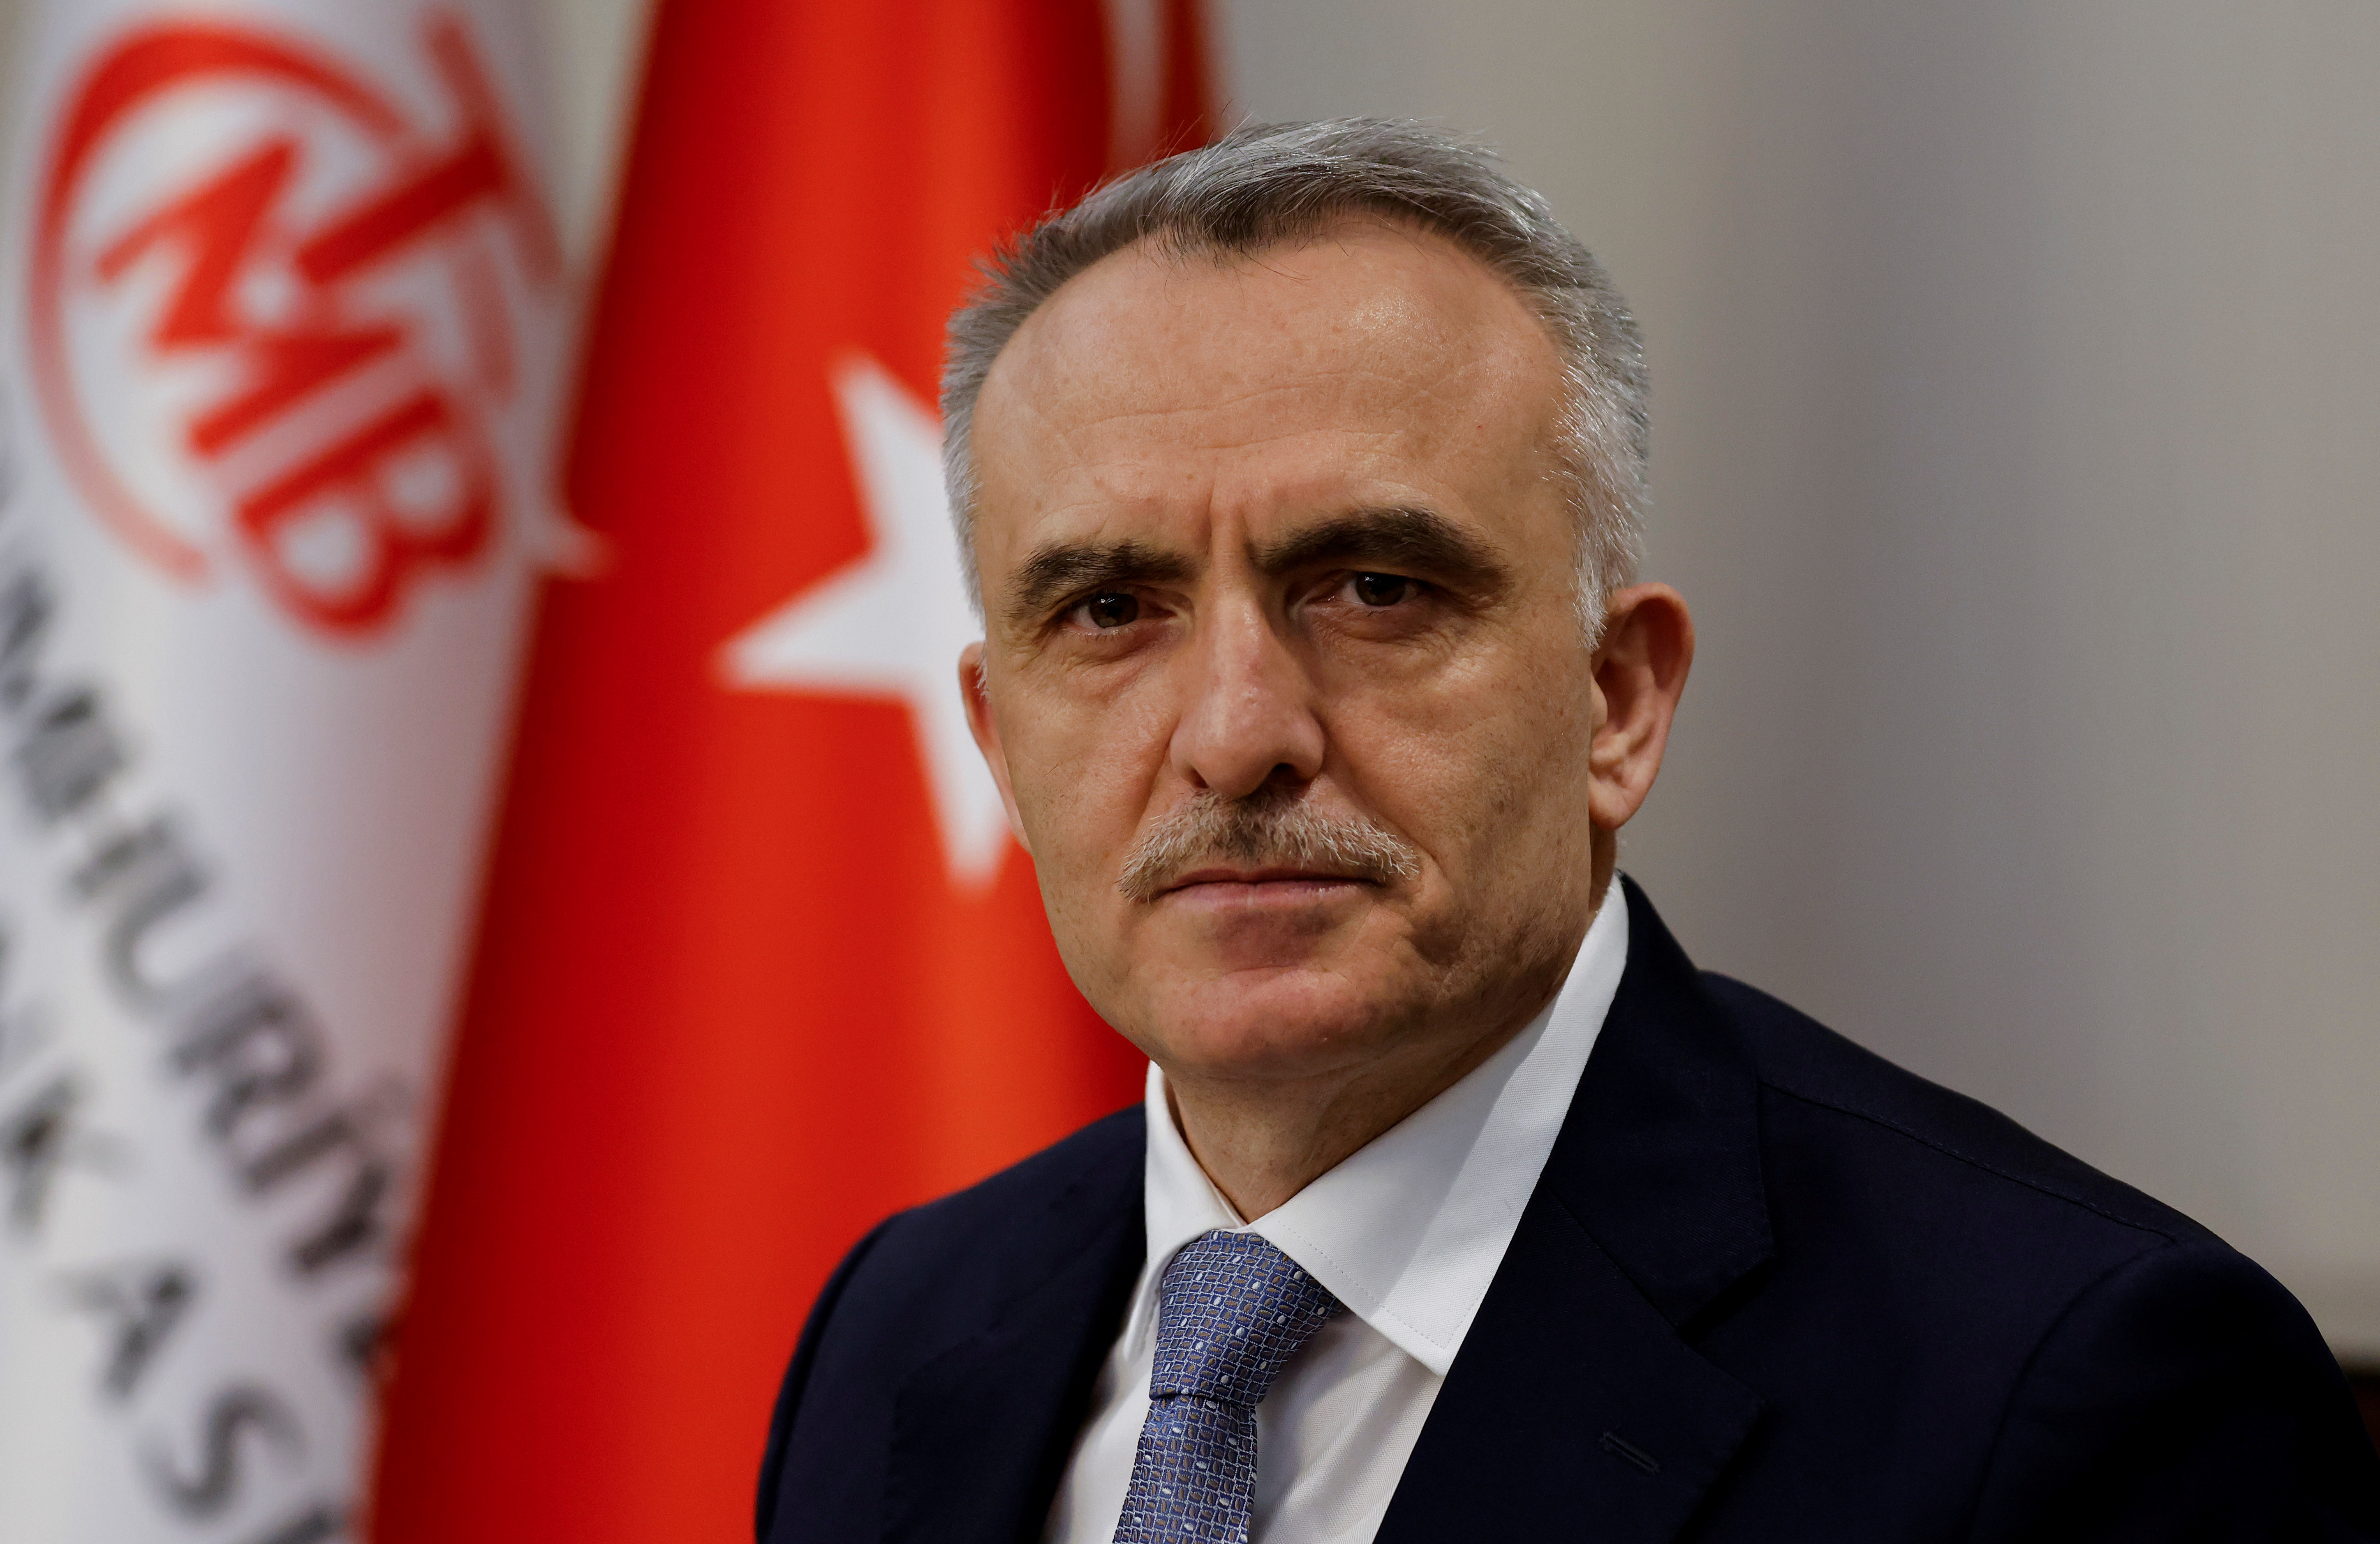 Turkey's Central Bank Governor Naci Agbal poses during an interview with Reuters in his office in Istanbul, Turkey, February 4, 2021. Picture taken February 4, 2021. REUTERS/Umit Bektas/File Photo